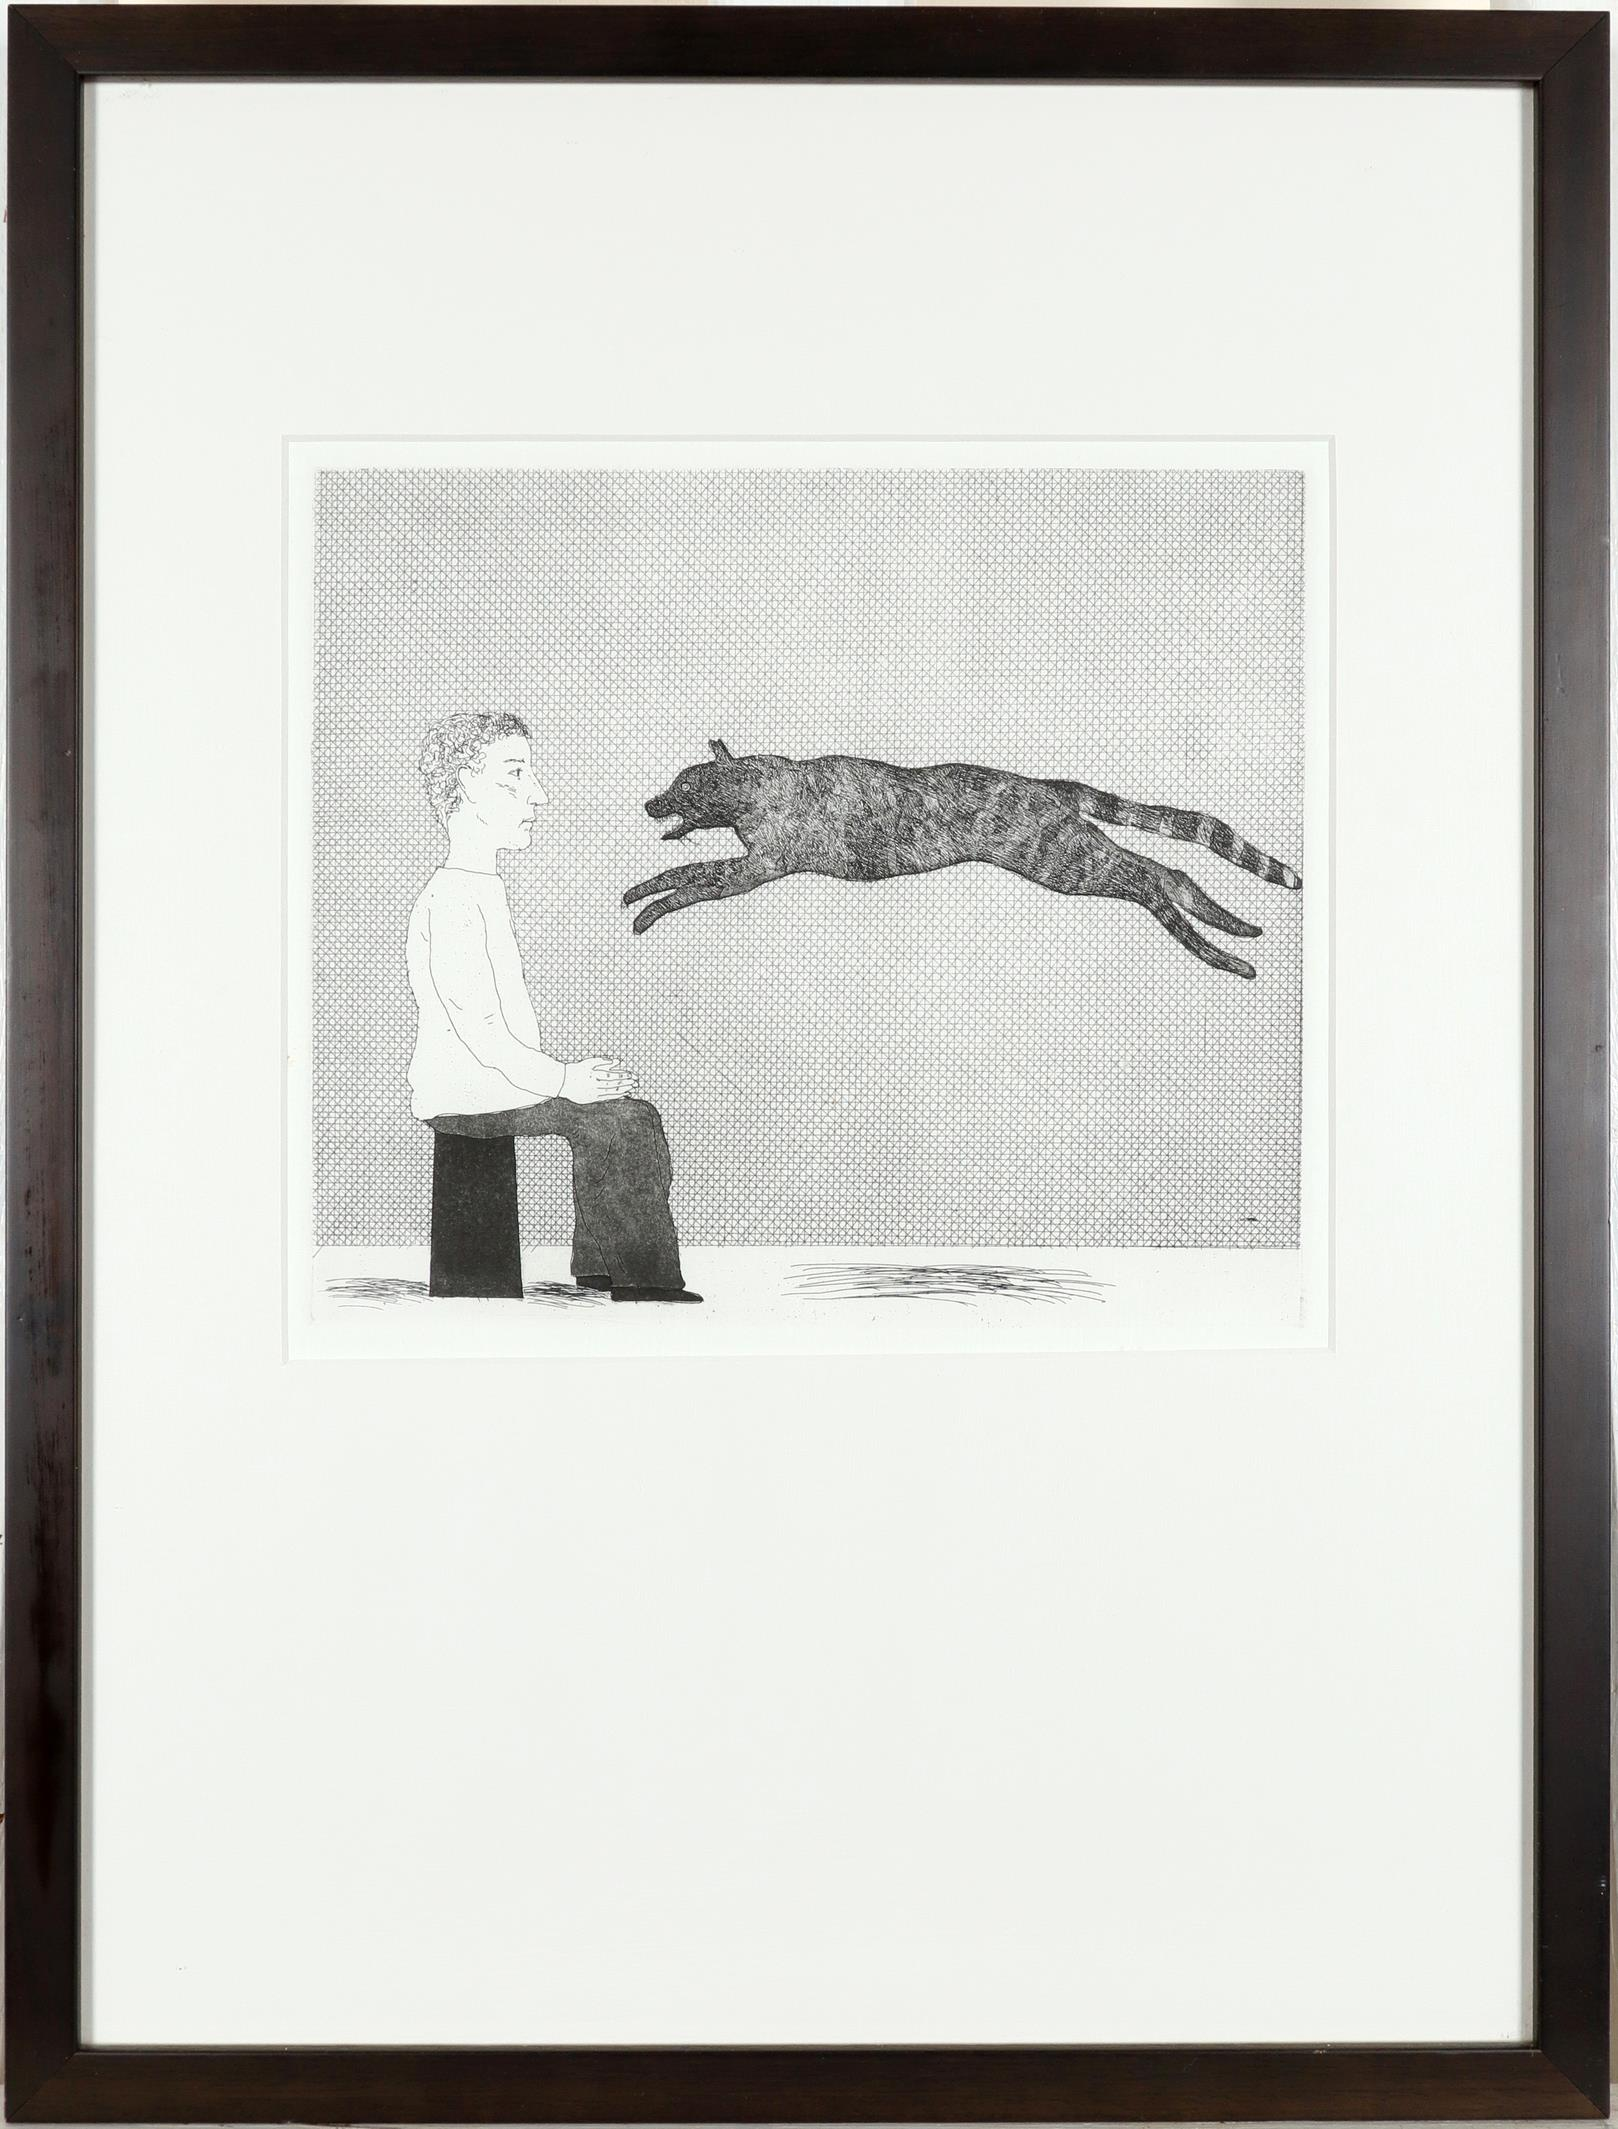 ‡David Hockney RA (b.1937) A Black Cat Leaping (S.A.C 94; M.C.A.T 91) Etching and aquatint, 1969, - Image 2 of 3